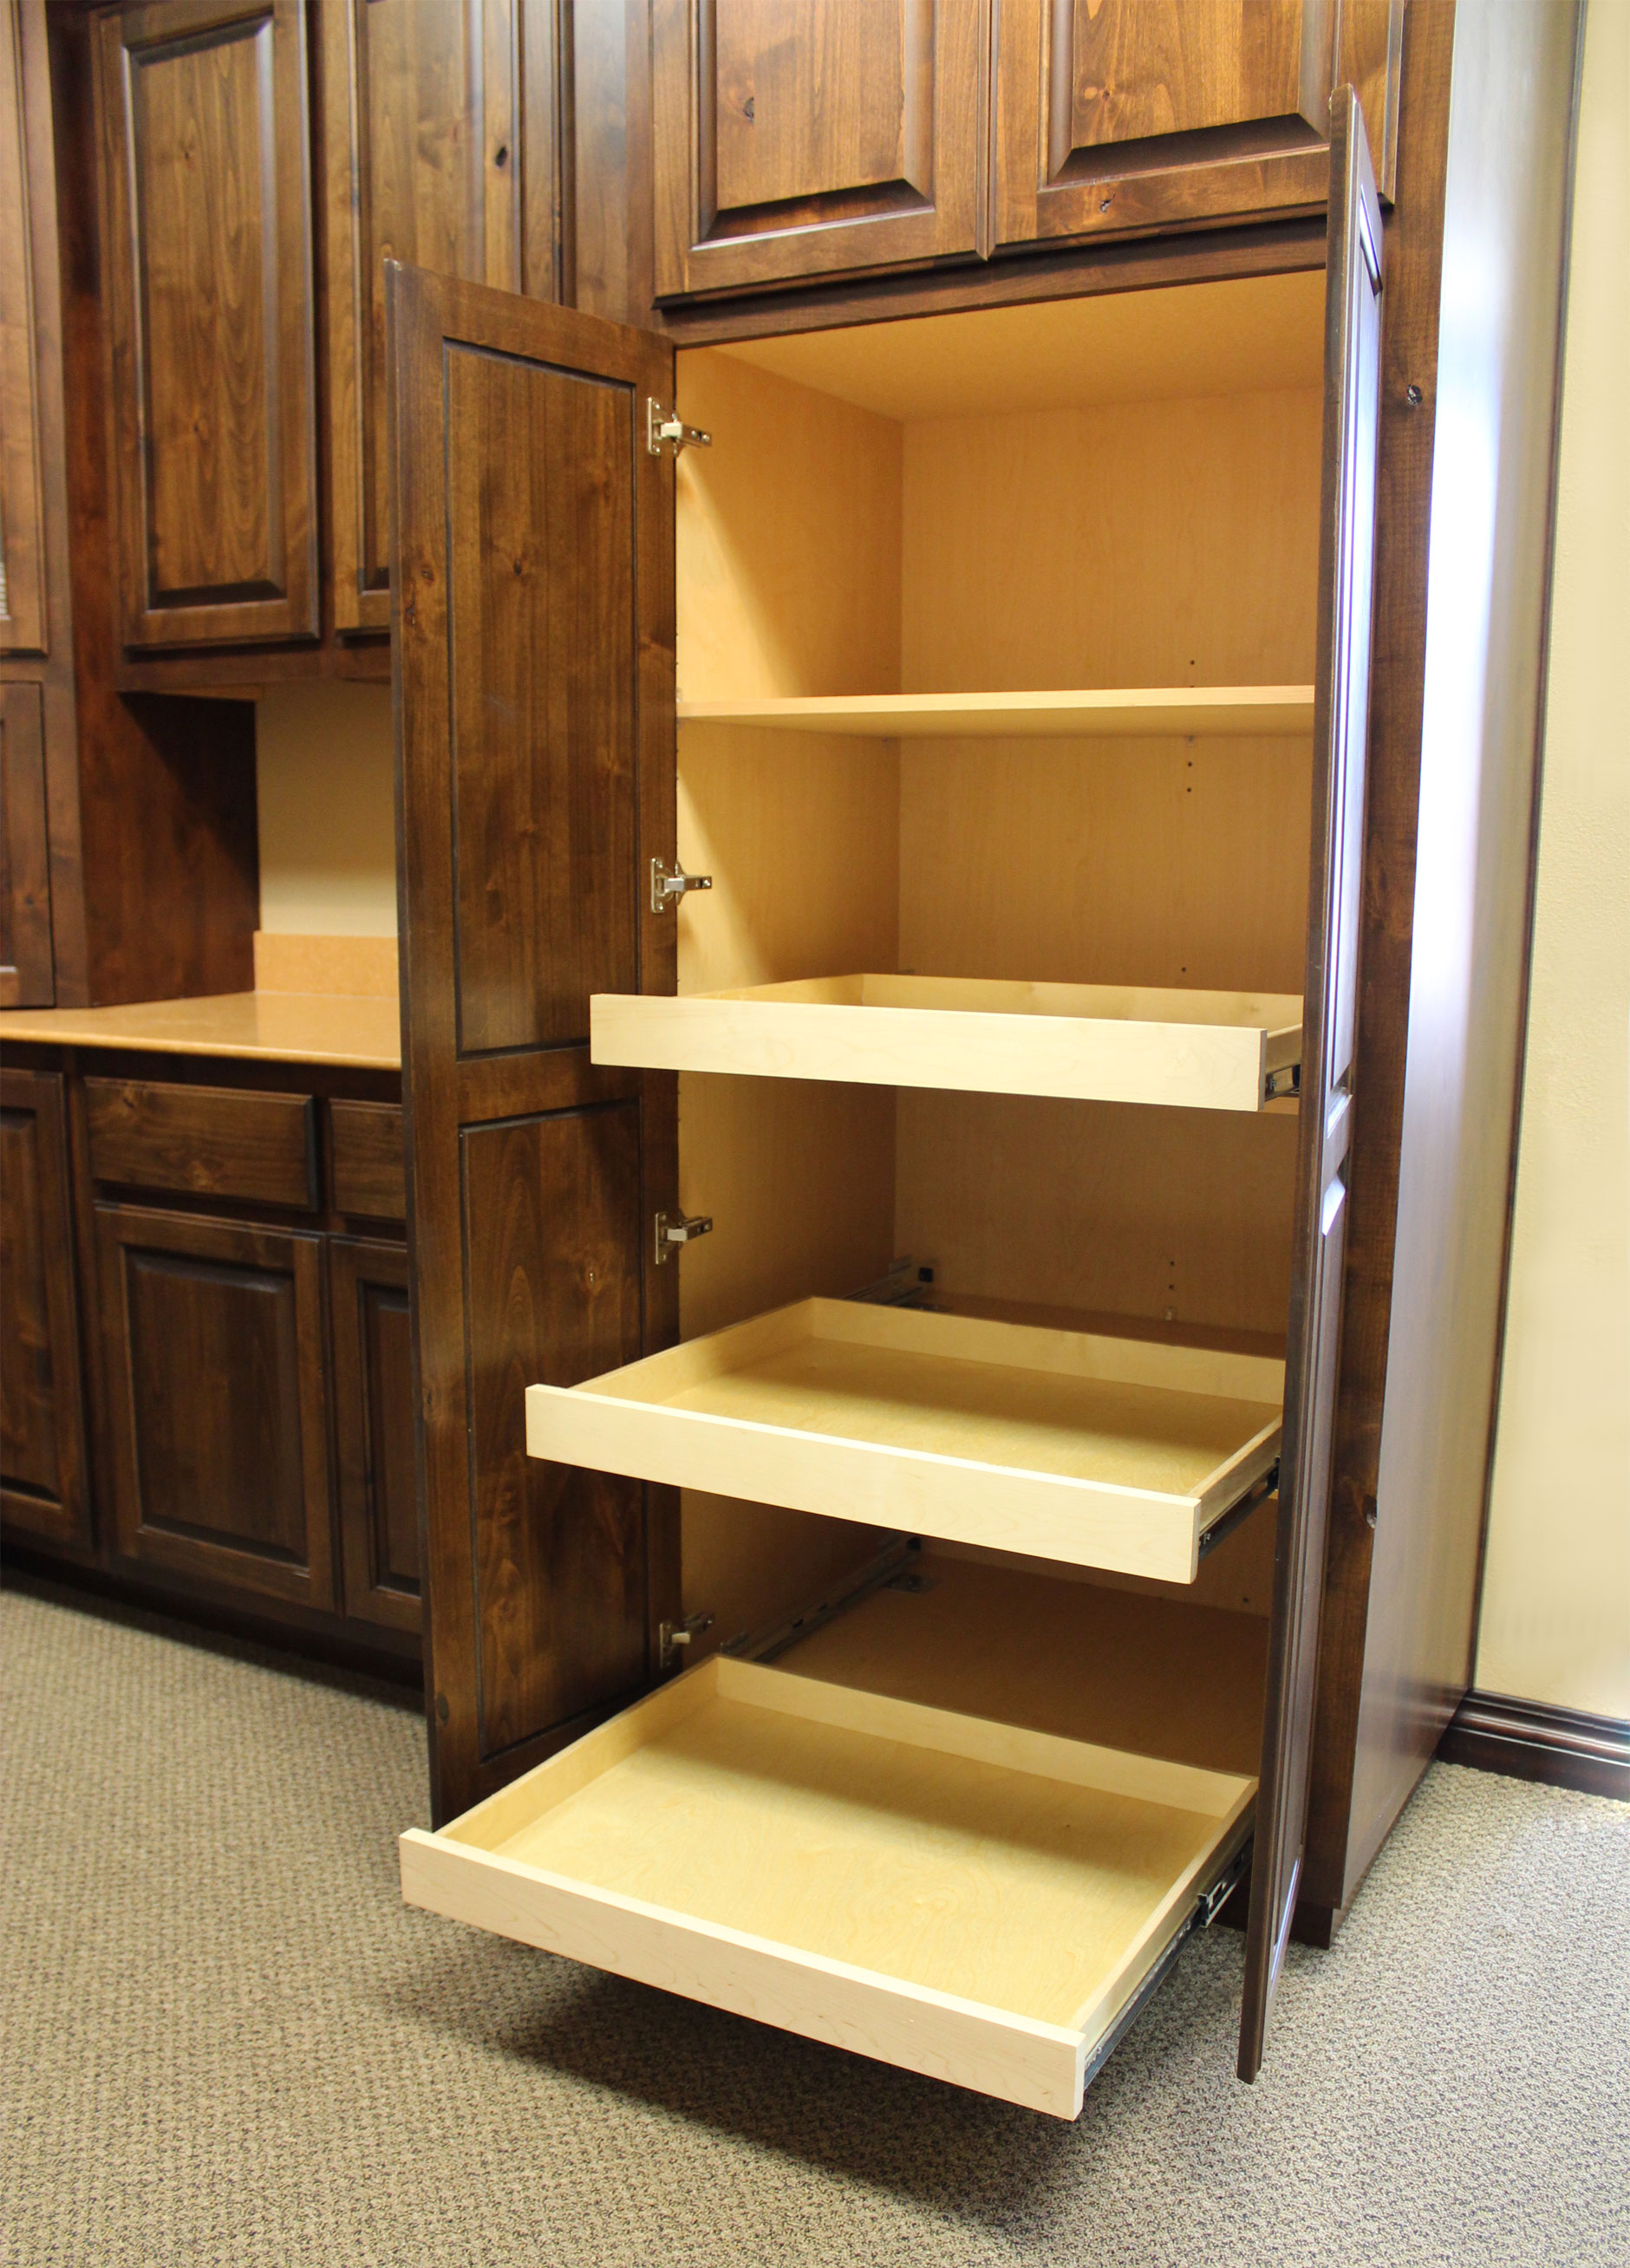 pull out shelfves for kitchen cabinets